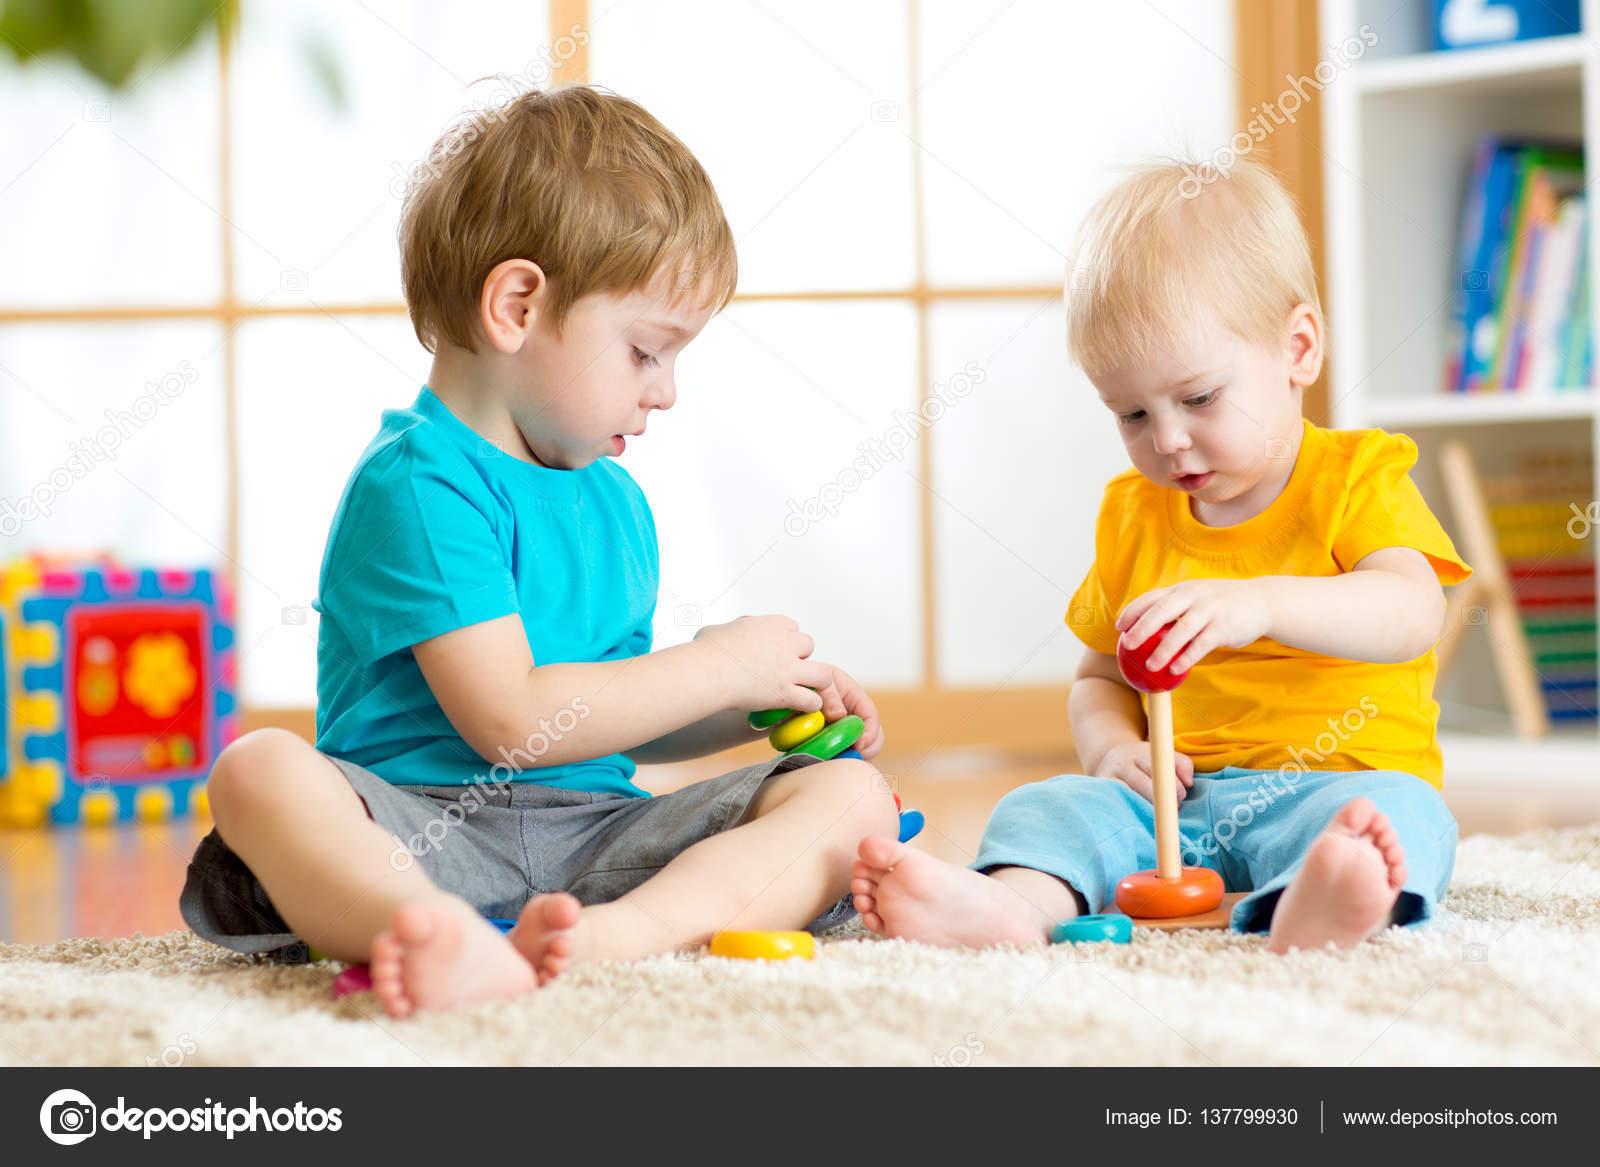 Children Play With Educational Toys In Preschool Or